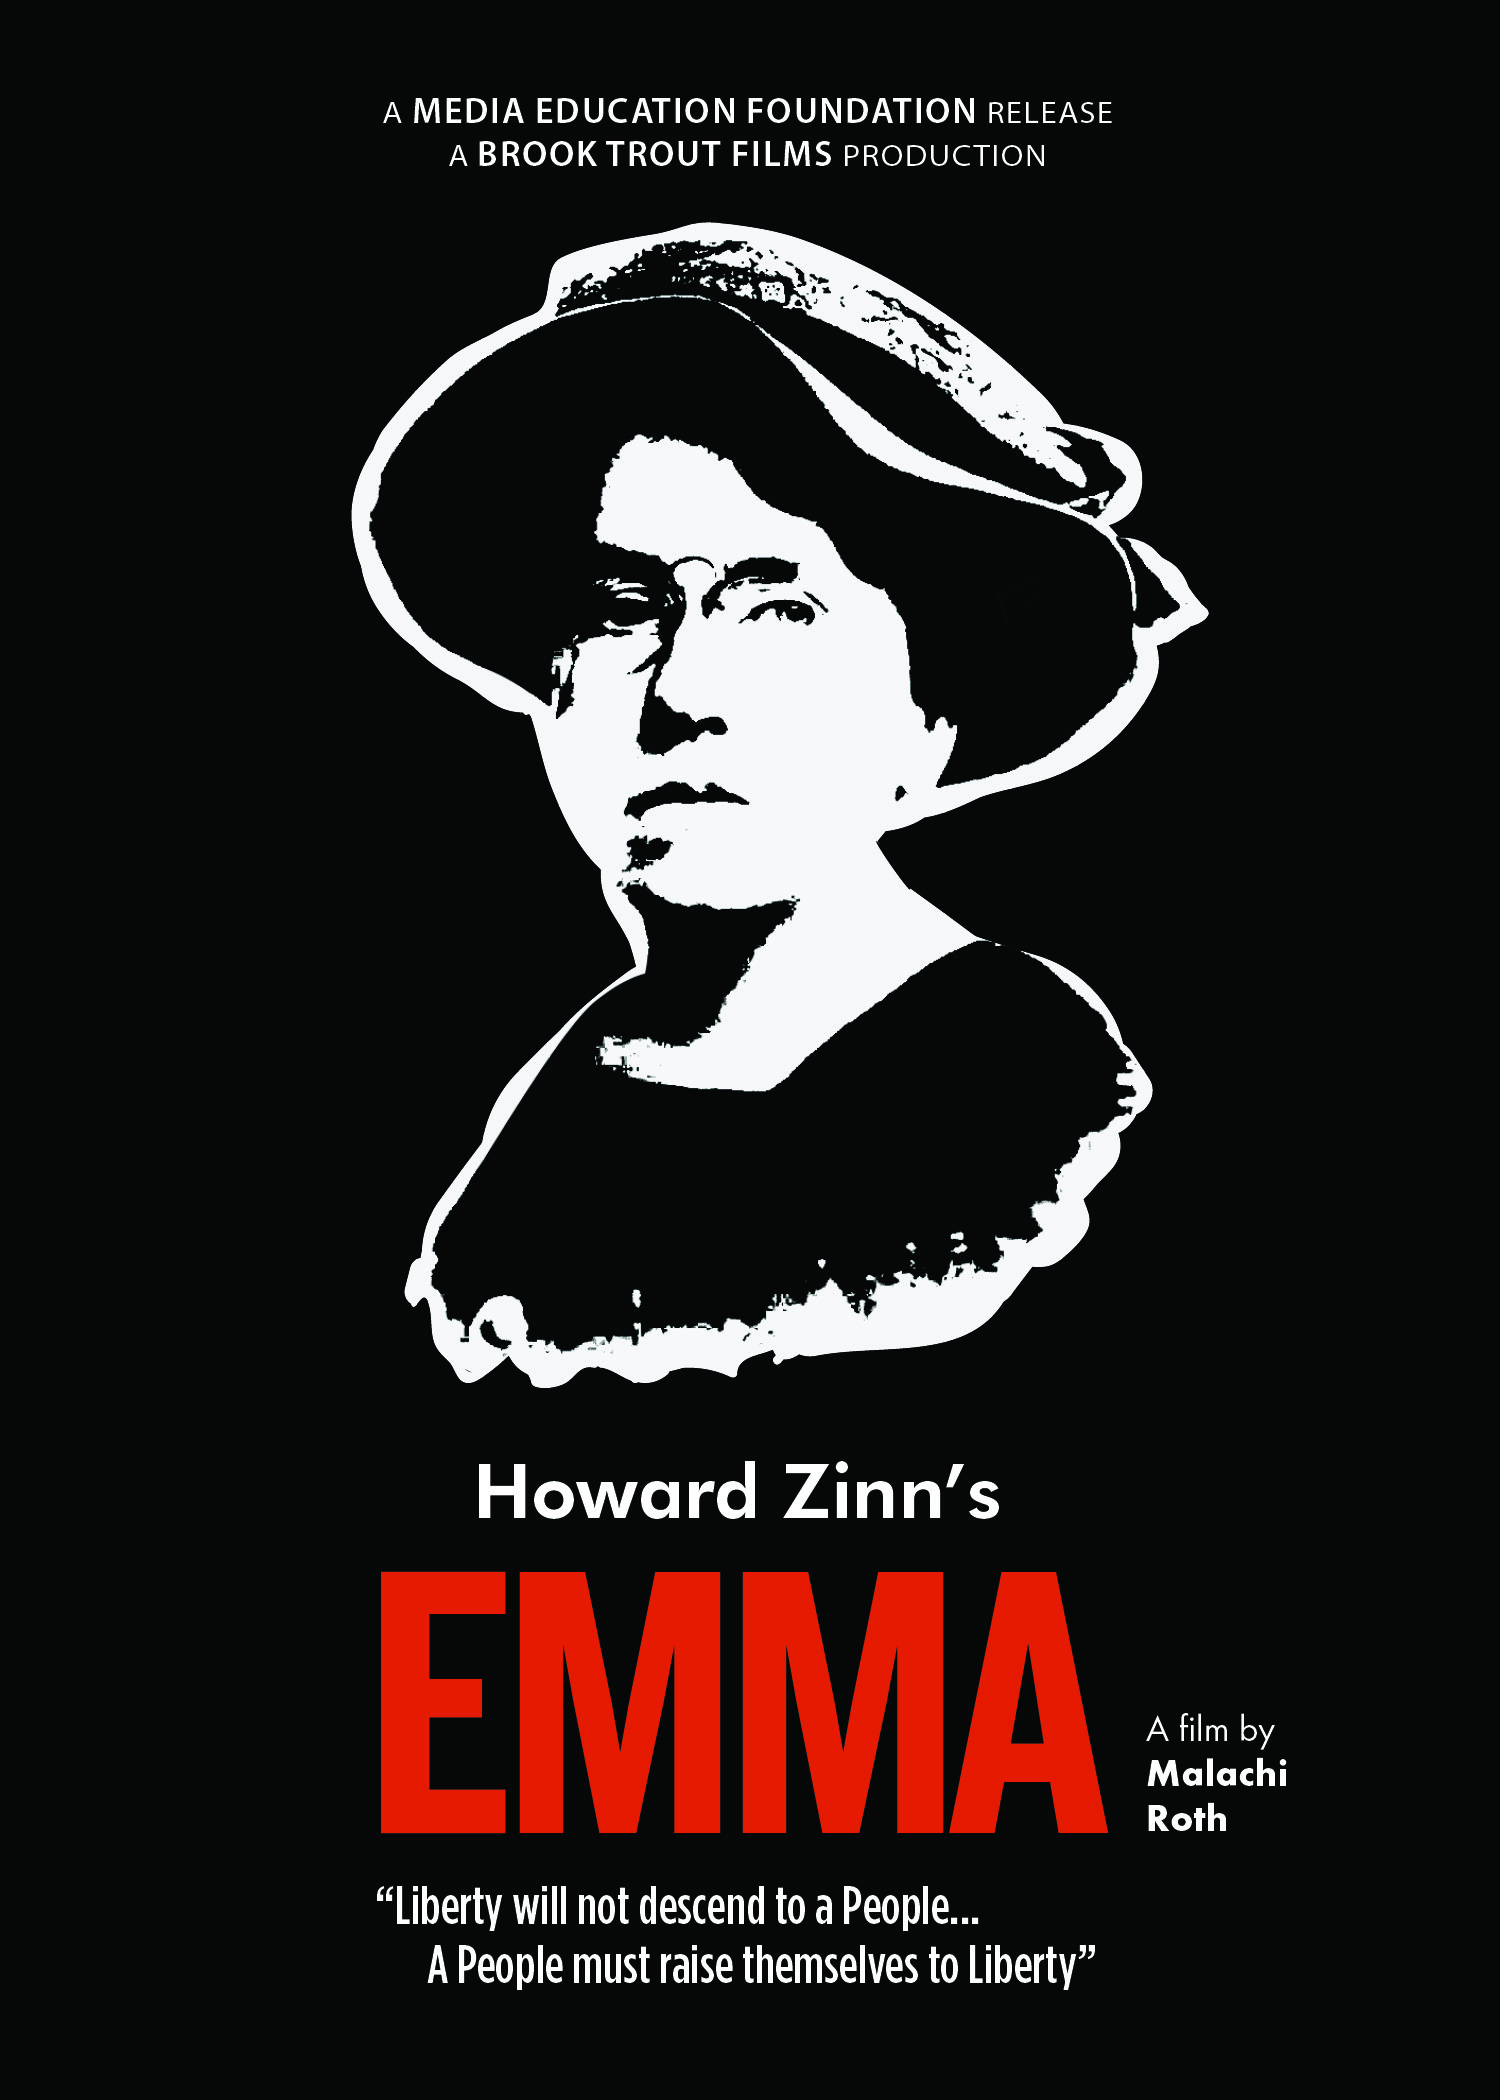 Howard Zinn's Emma | HowardZinn.org